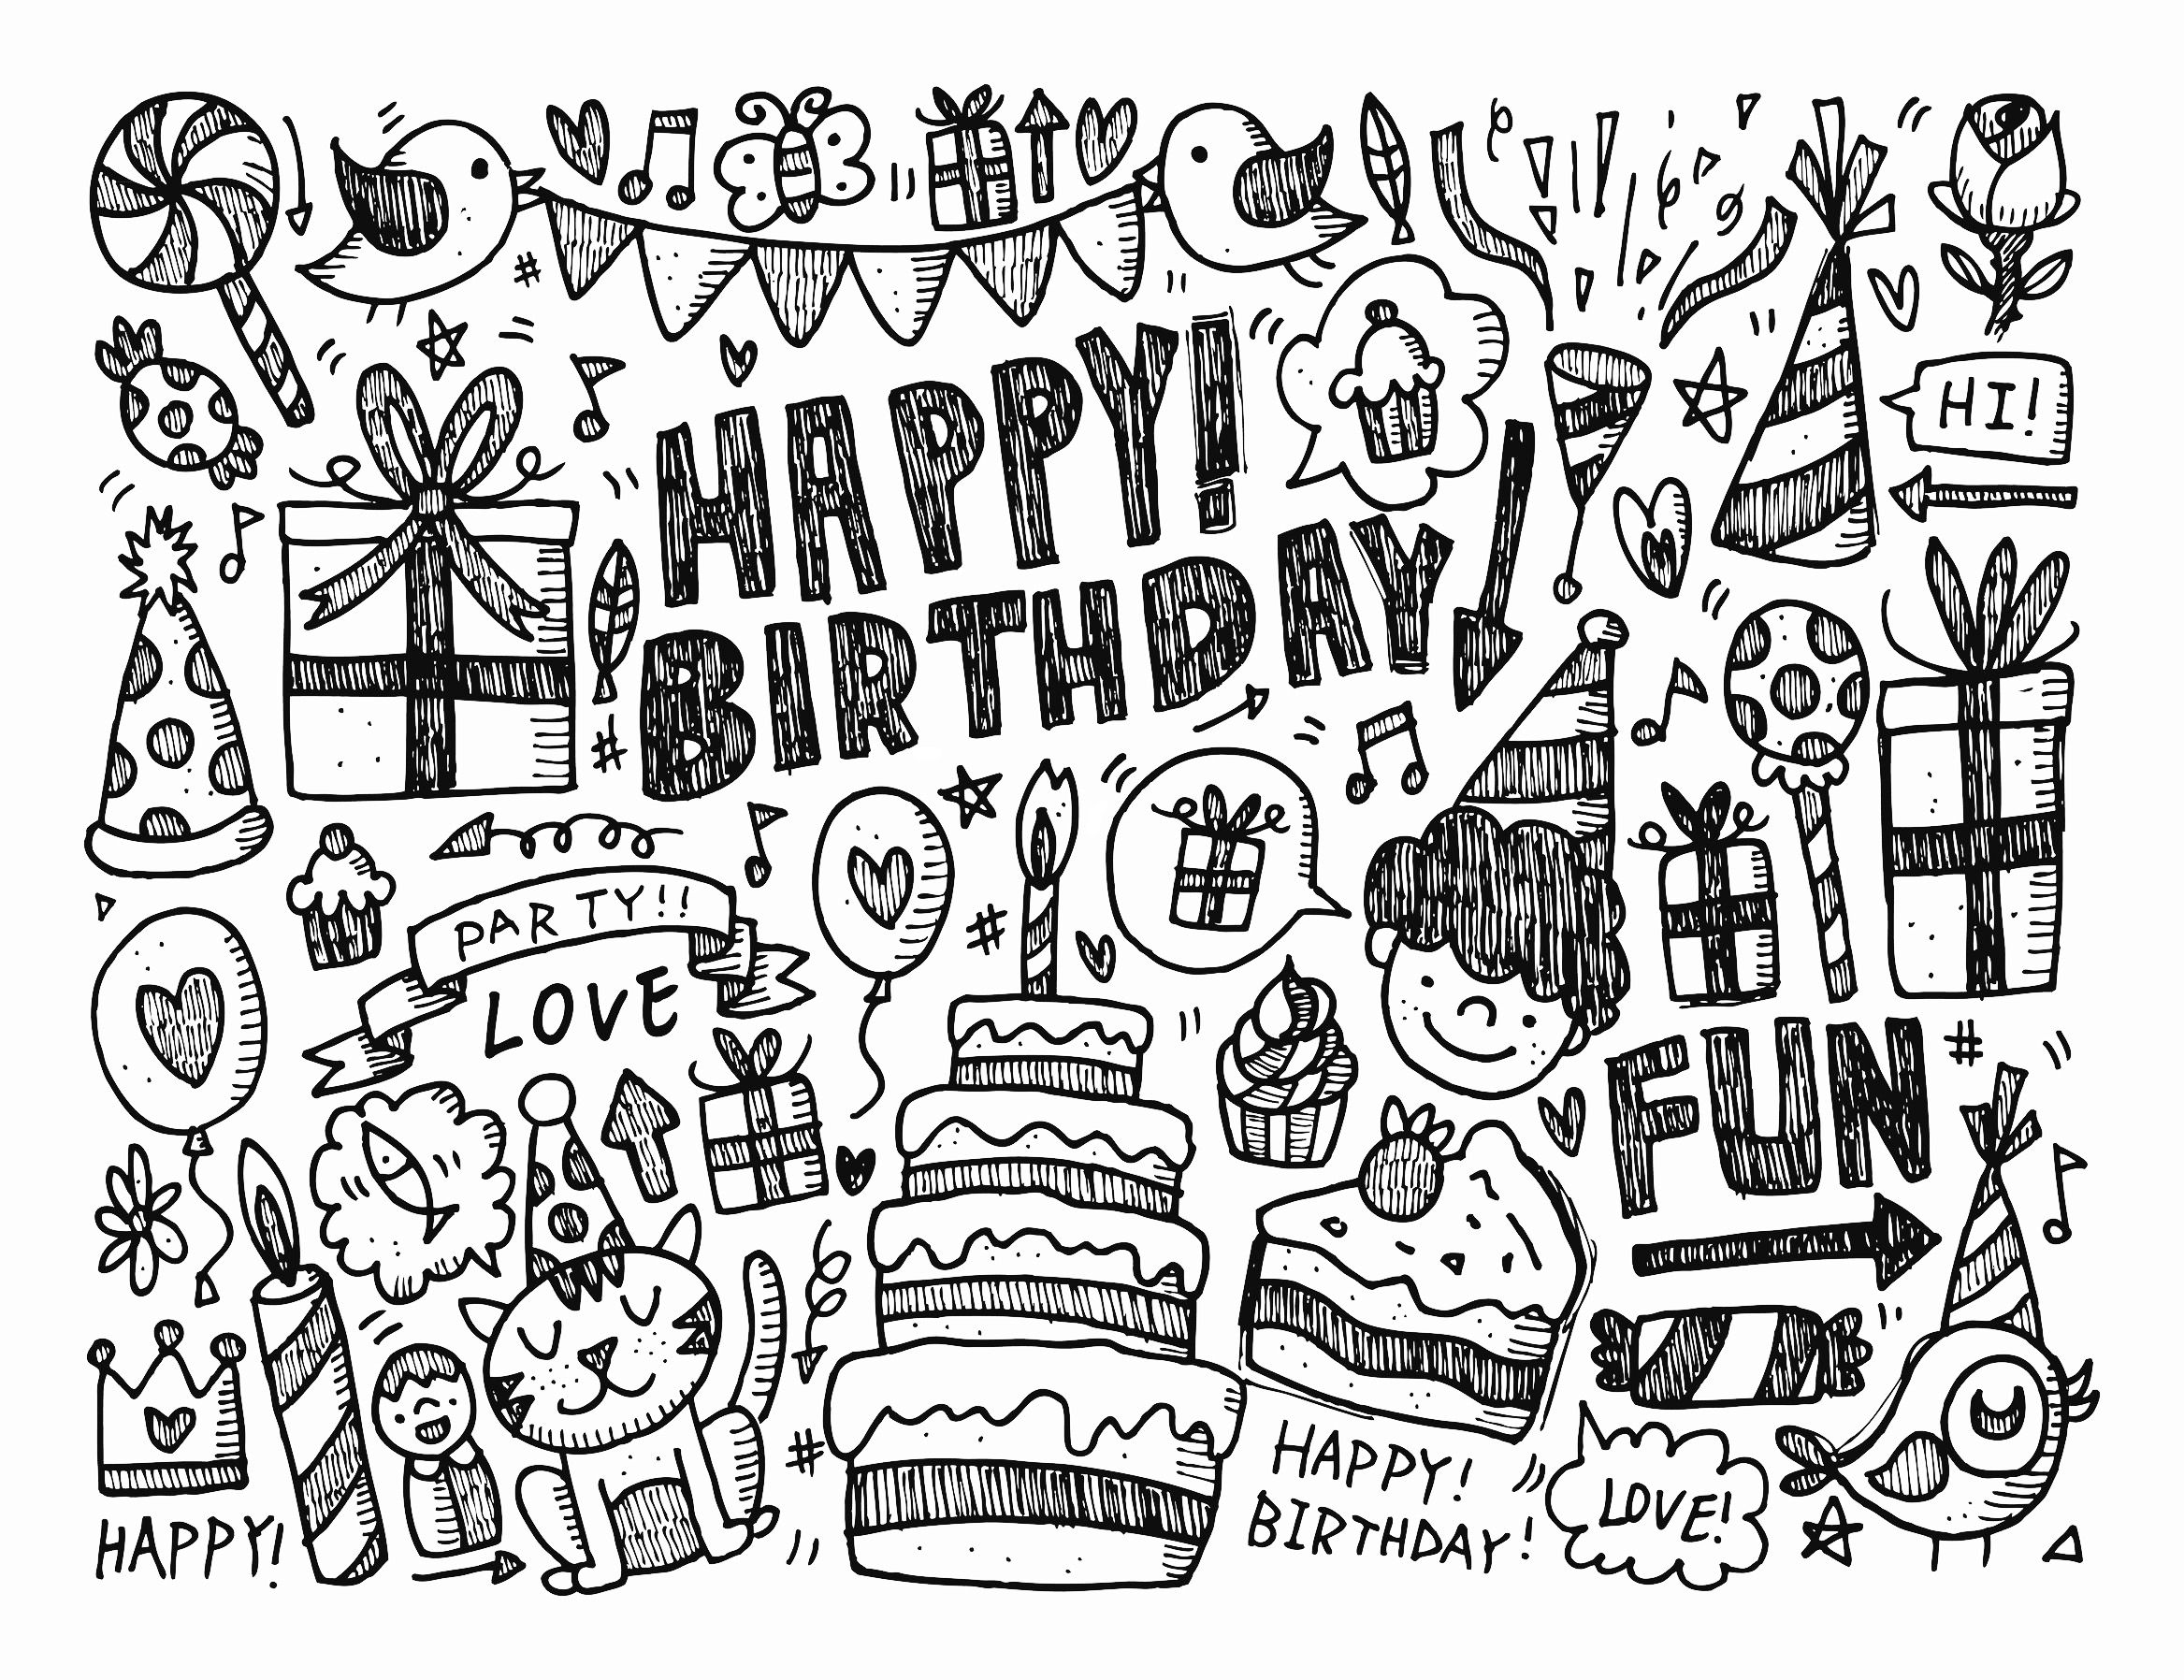 Doodle Happy Birthday Doodle Art Doodling Coloring Pages For